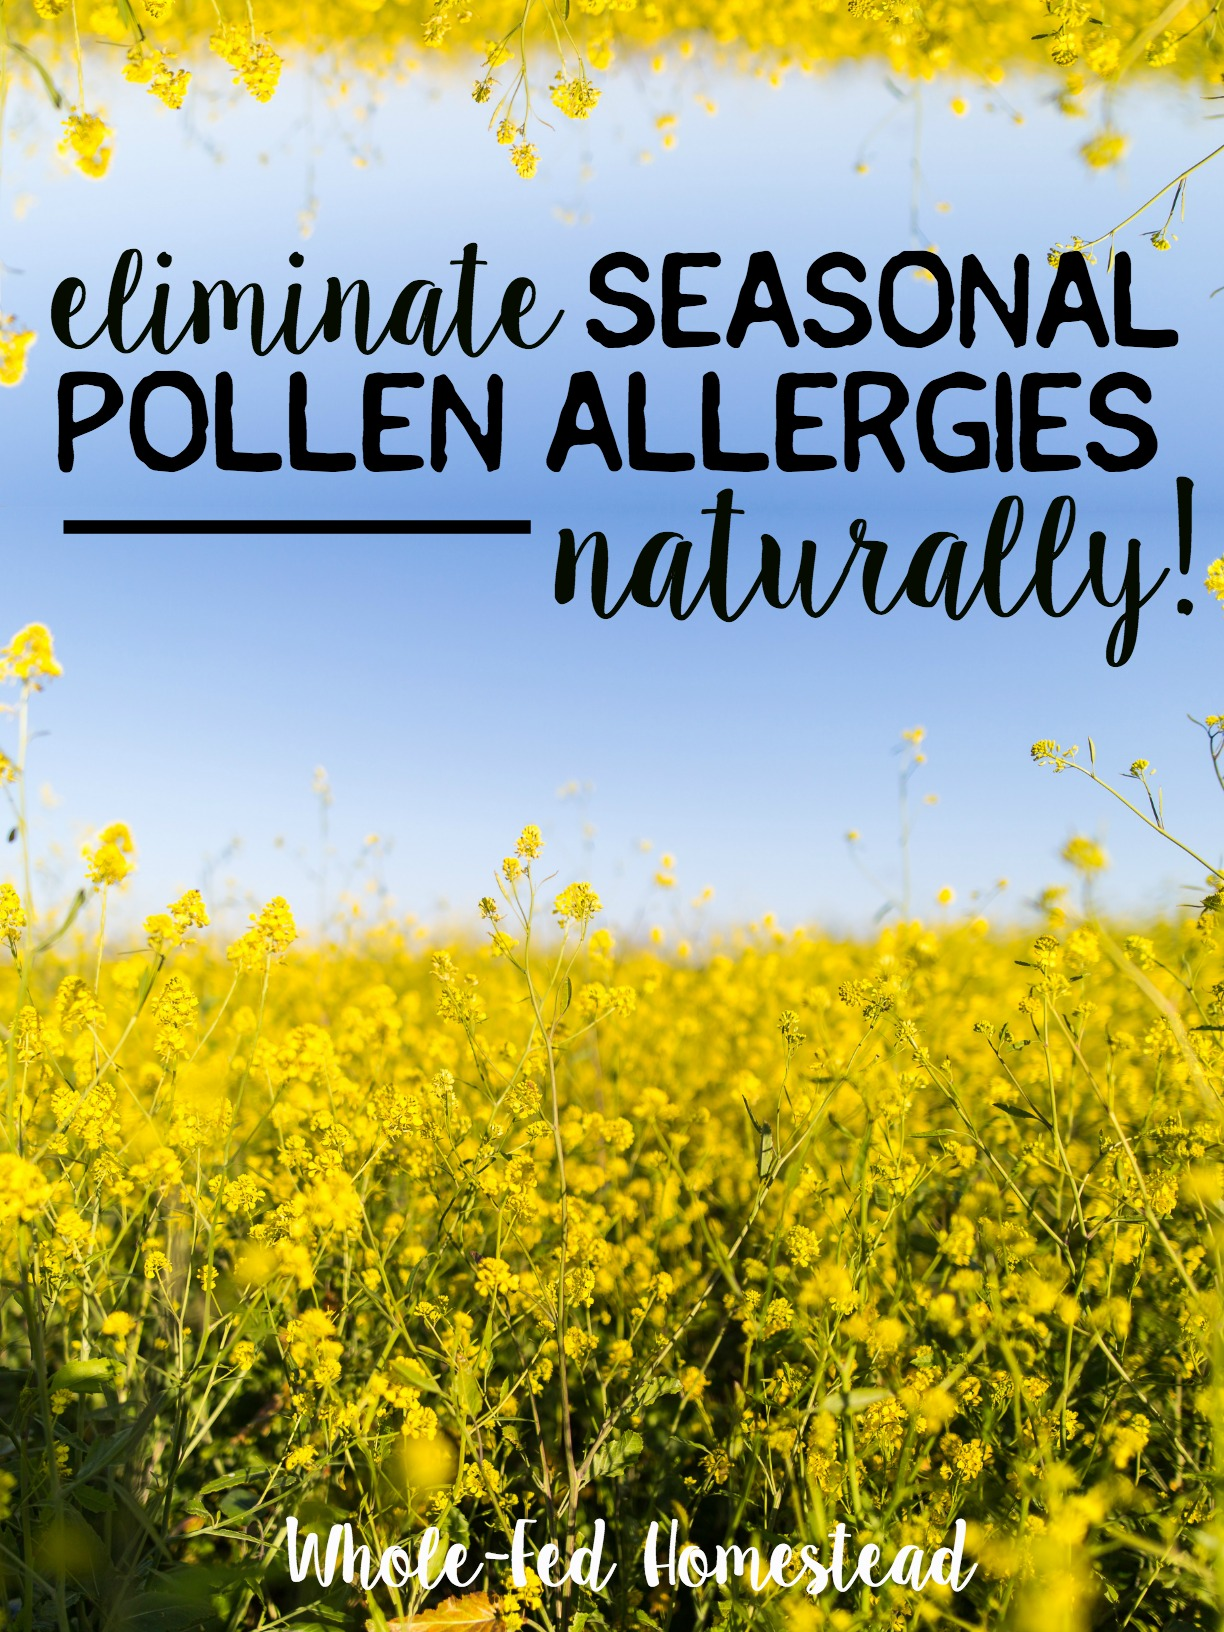 Eliminate Seasonal Pollen Allergies Naturally | Whole-Fed Homestead